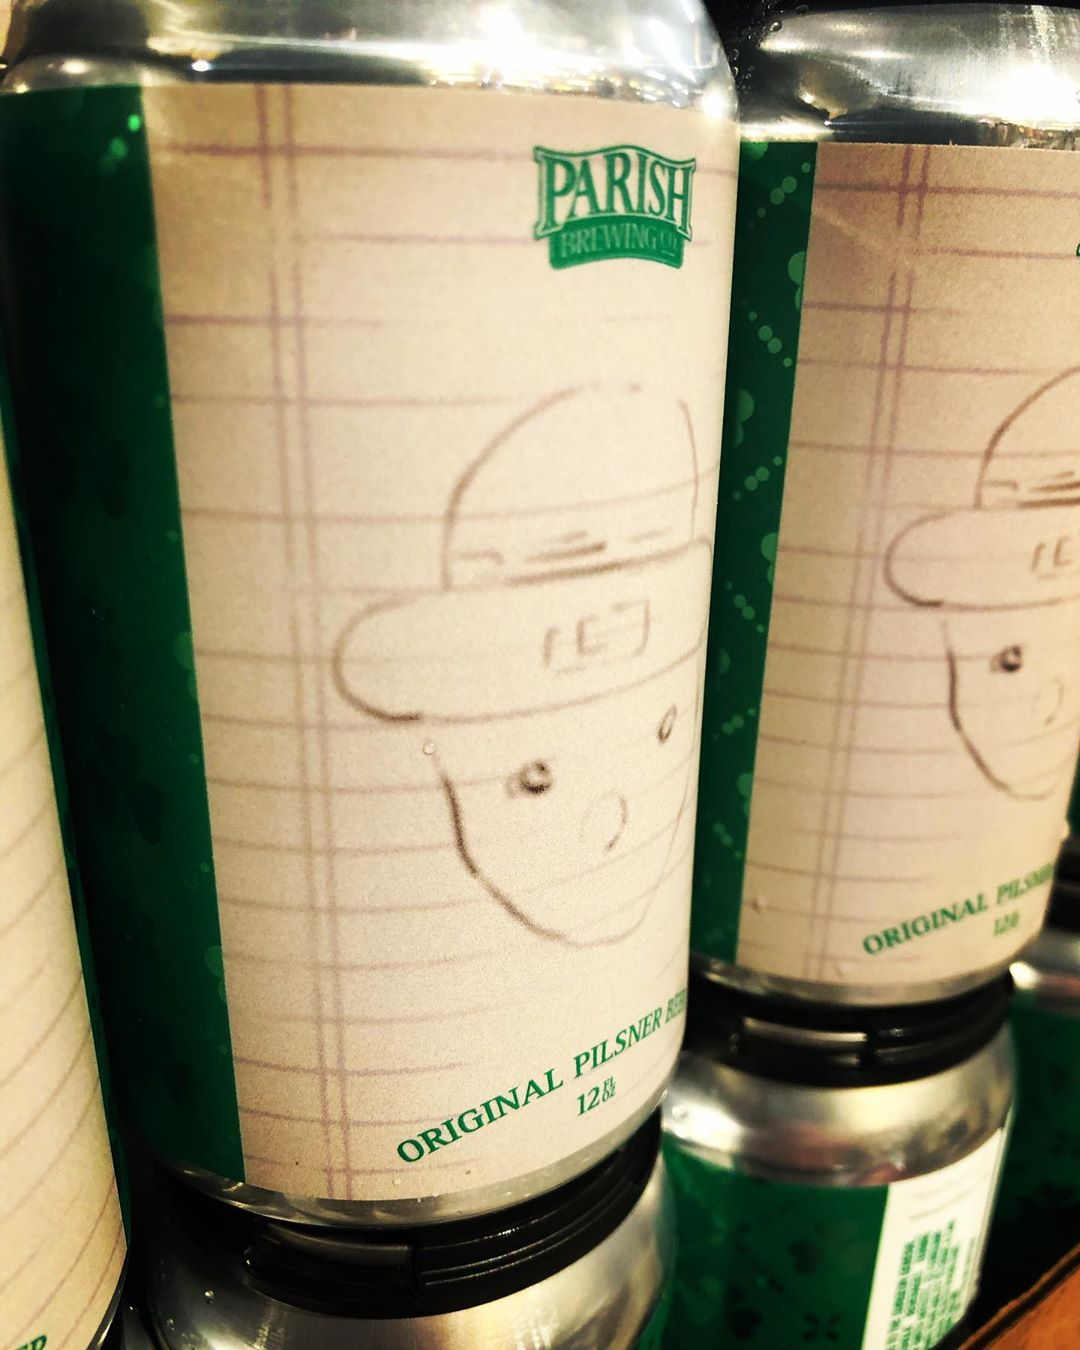 Anybody seen this leprechaun? We spotted it here at our Perkins Rd location! @parishbrewingco #noparadenocare…